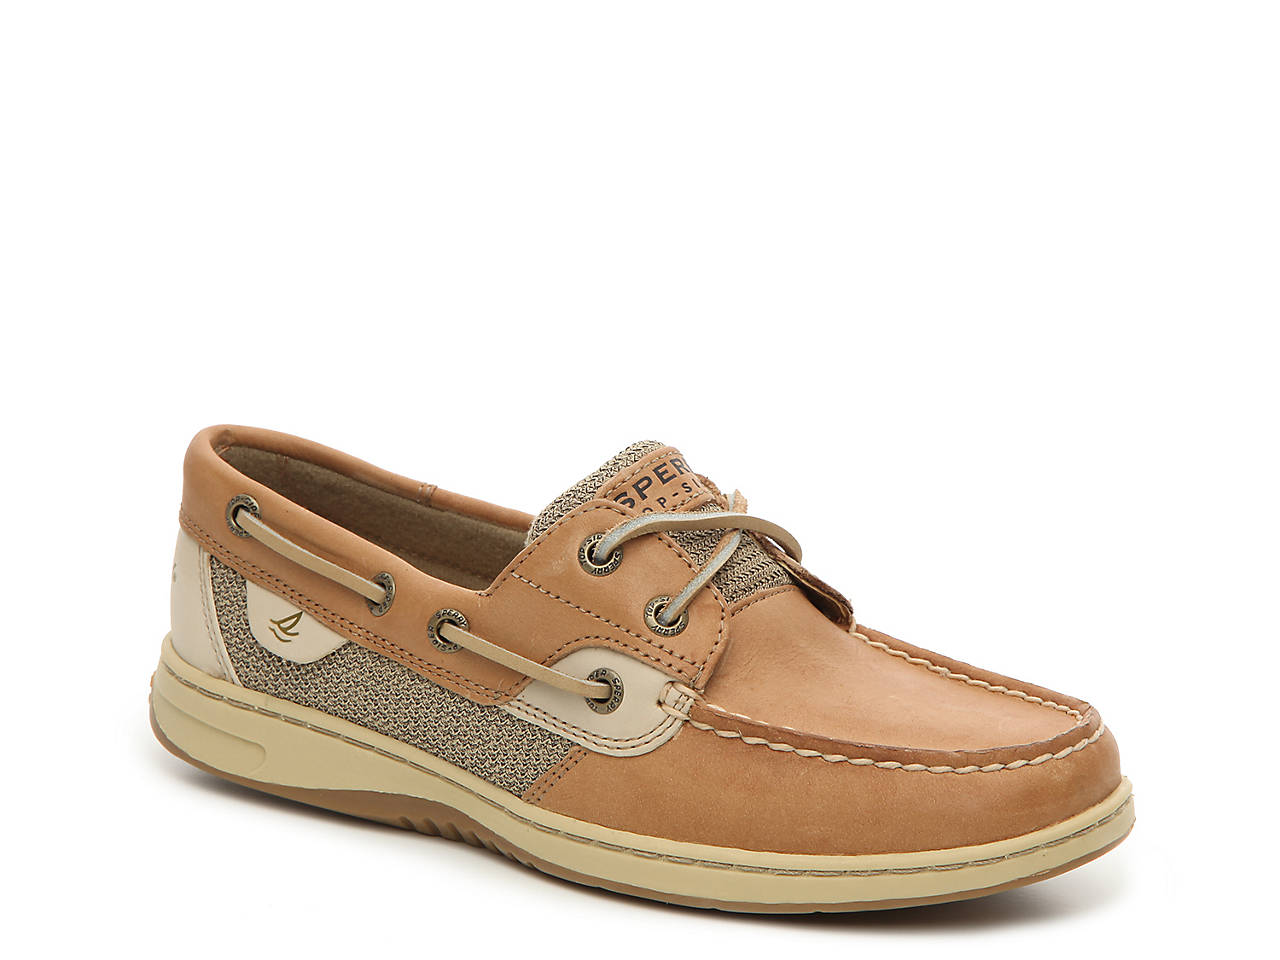 f86587359ea647 Sperry Top-Sider Bluefish Boat Shoe Women s Shoes